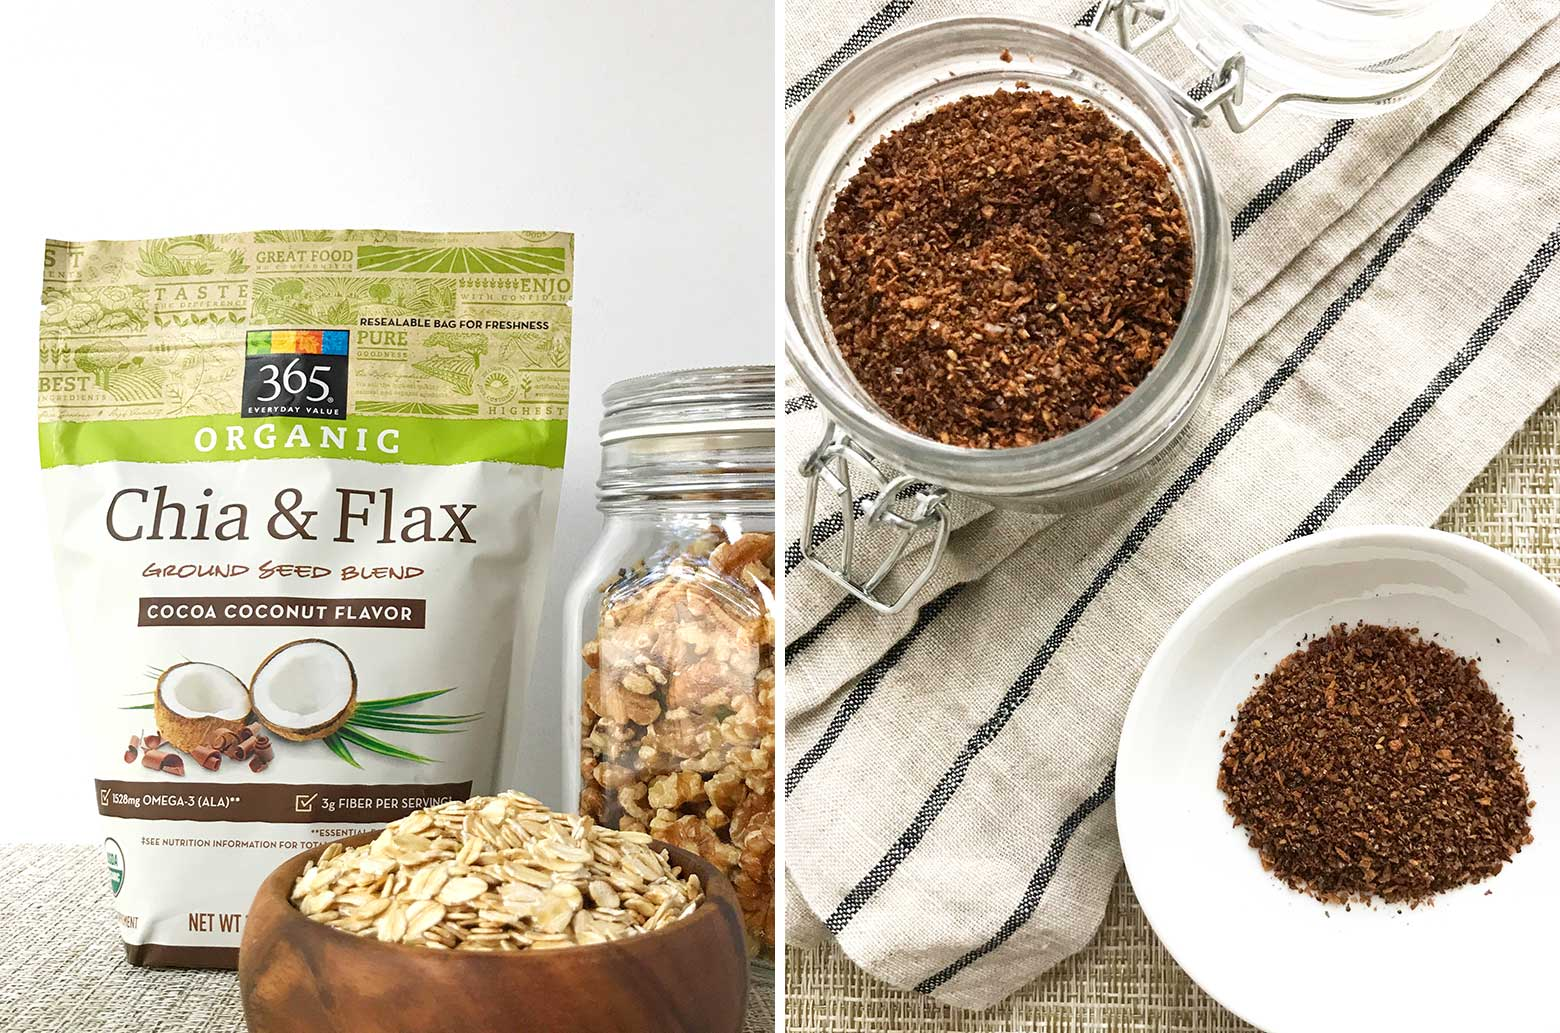 Whole Foods Chia and Flax Ground Seed Blend